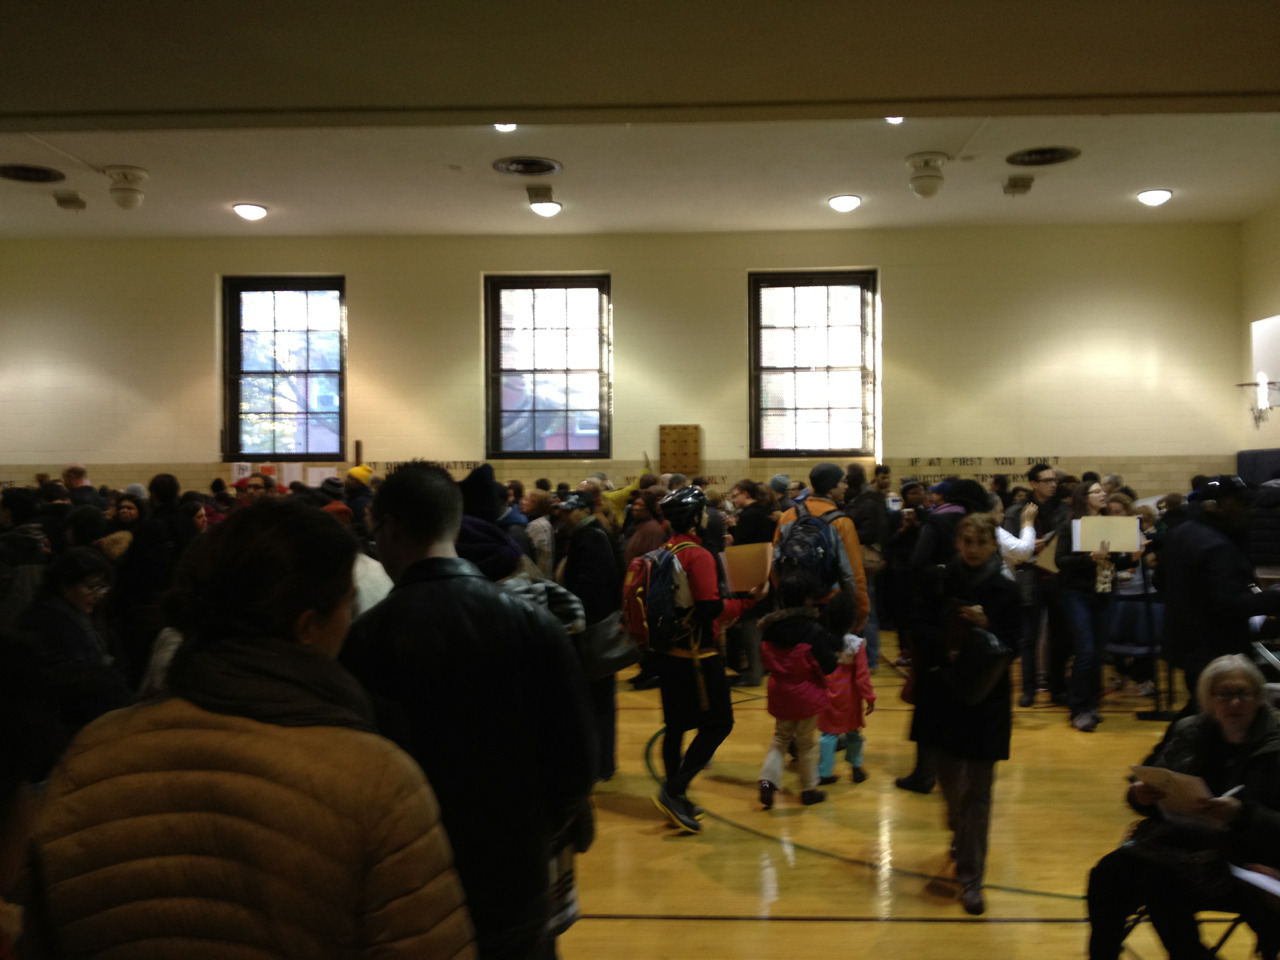 PS 9 is full of voters!